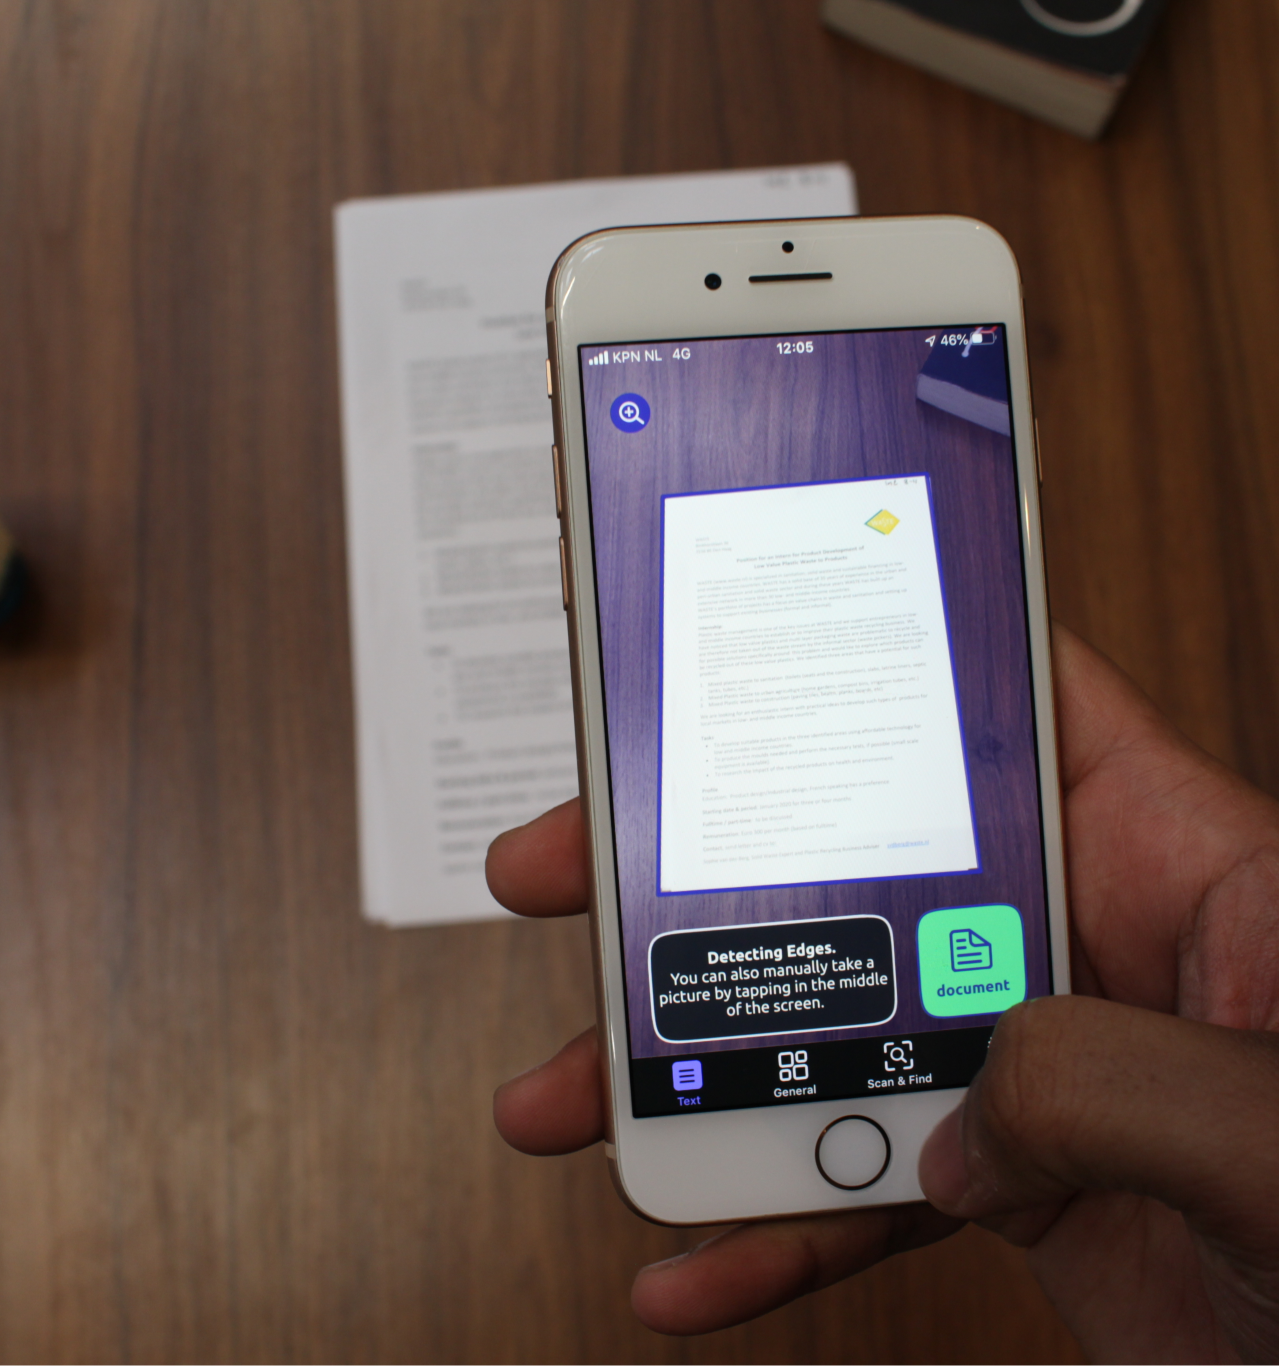 Holding a phone with the right hand. The Envision app is open and a scan of a document is made.